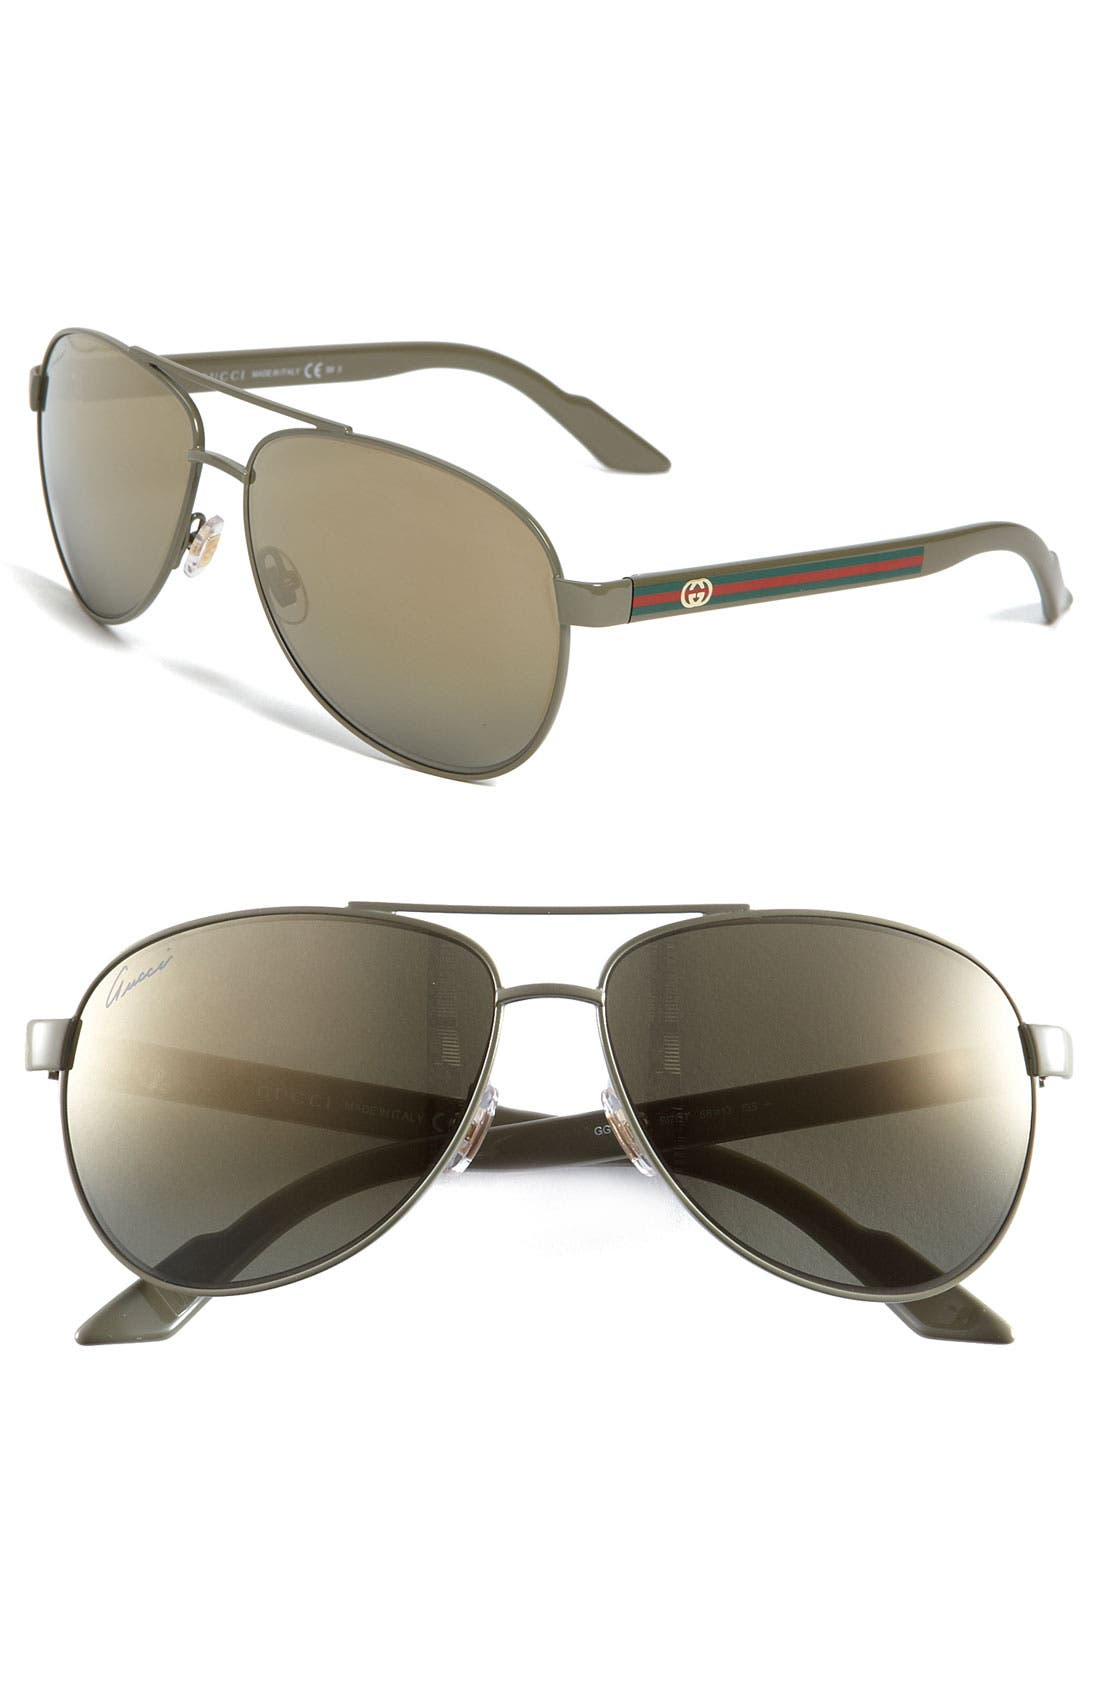 Main Image - Gucci 'Ribbon' 58mm Aviator Sunglasses